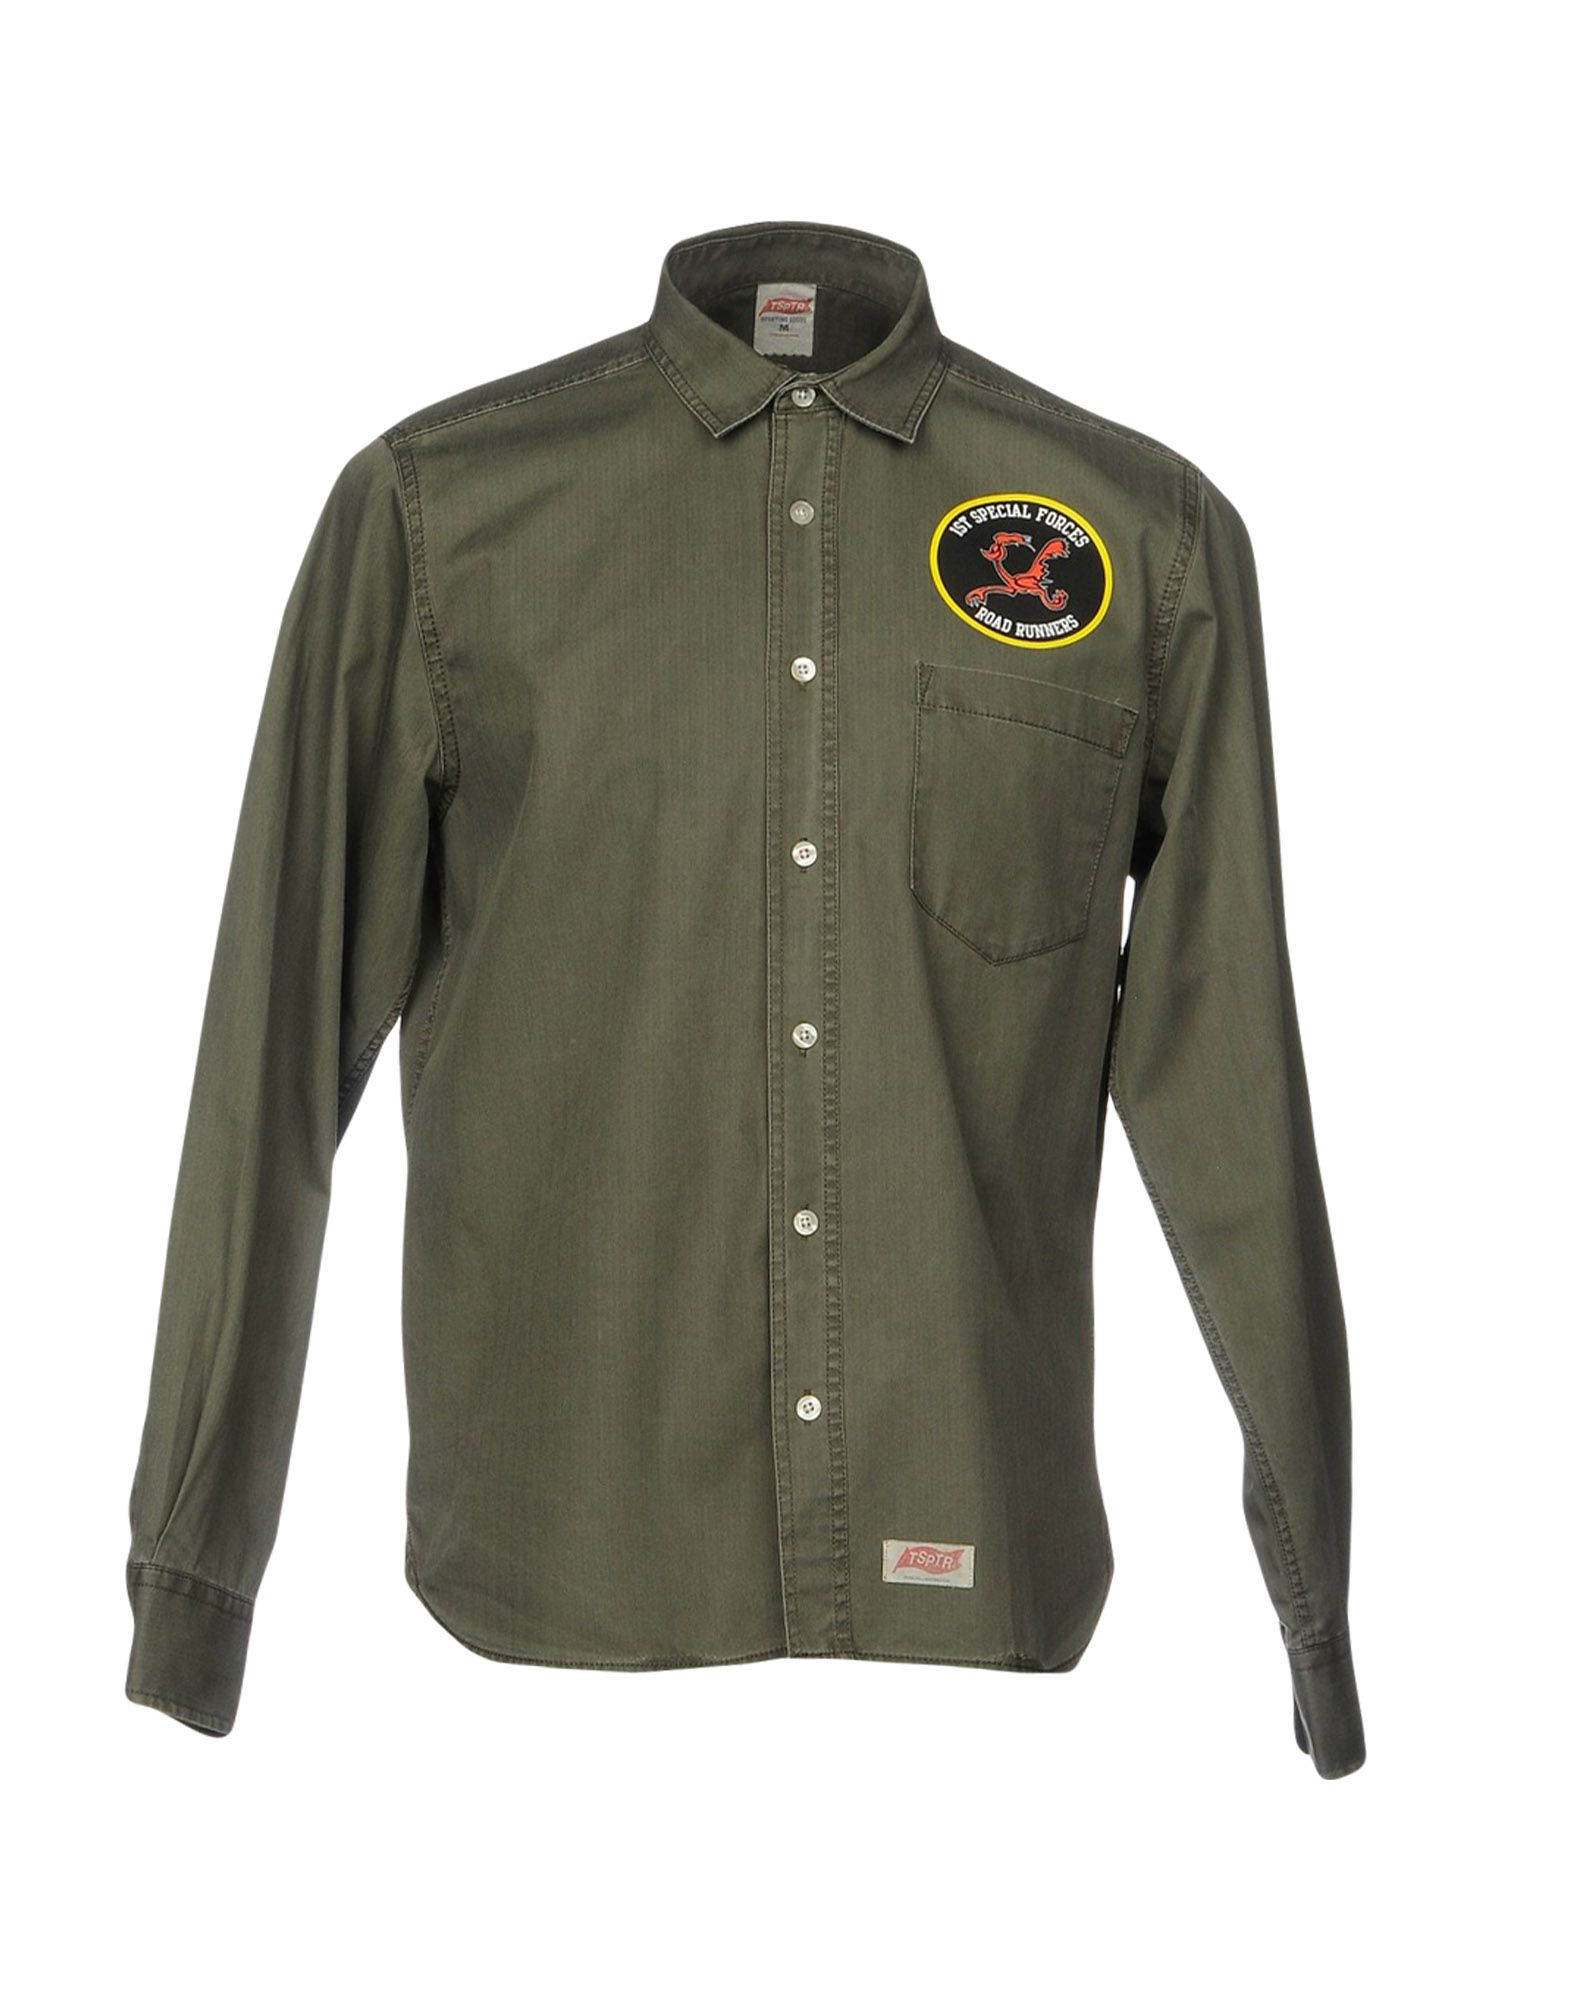 TSPTR Solid Color Shirt in Military Green